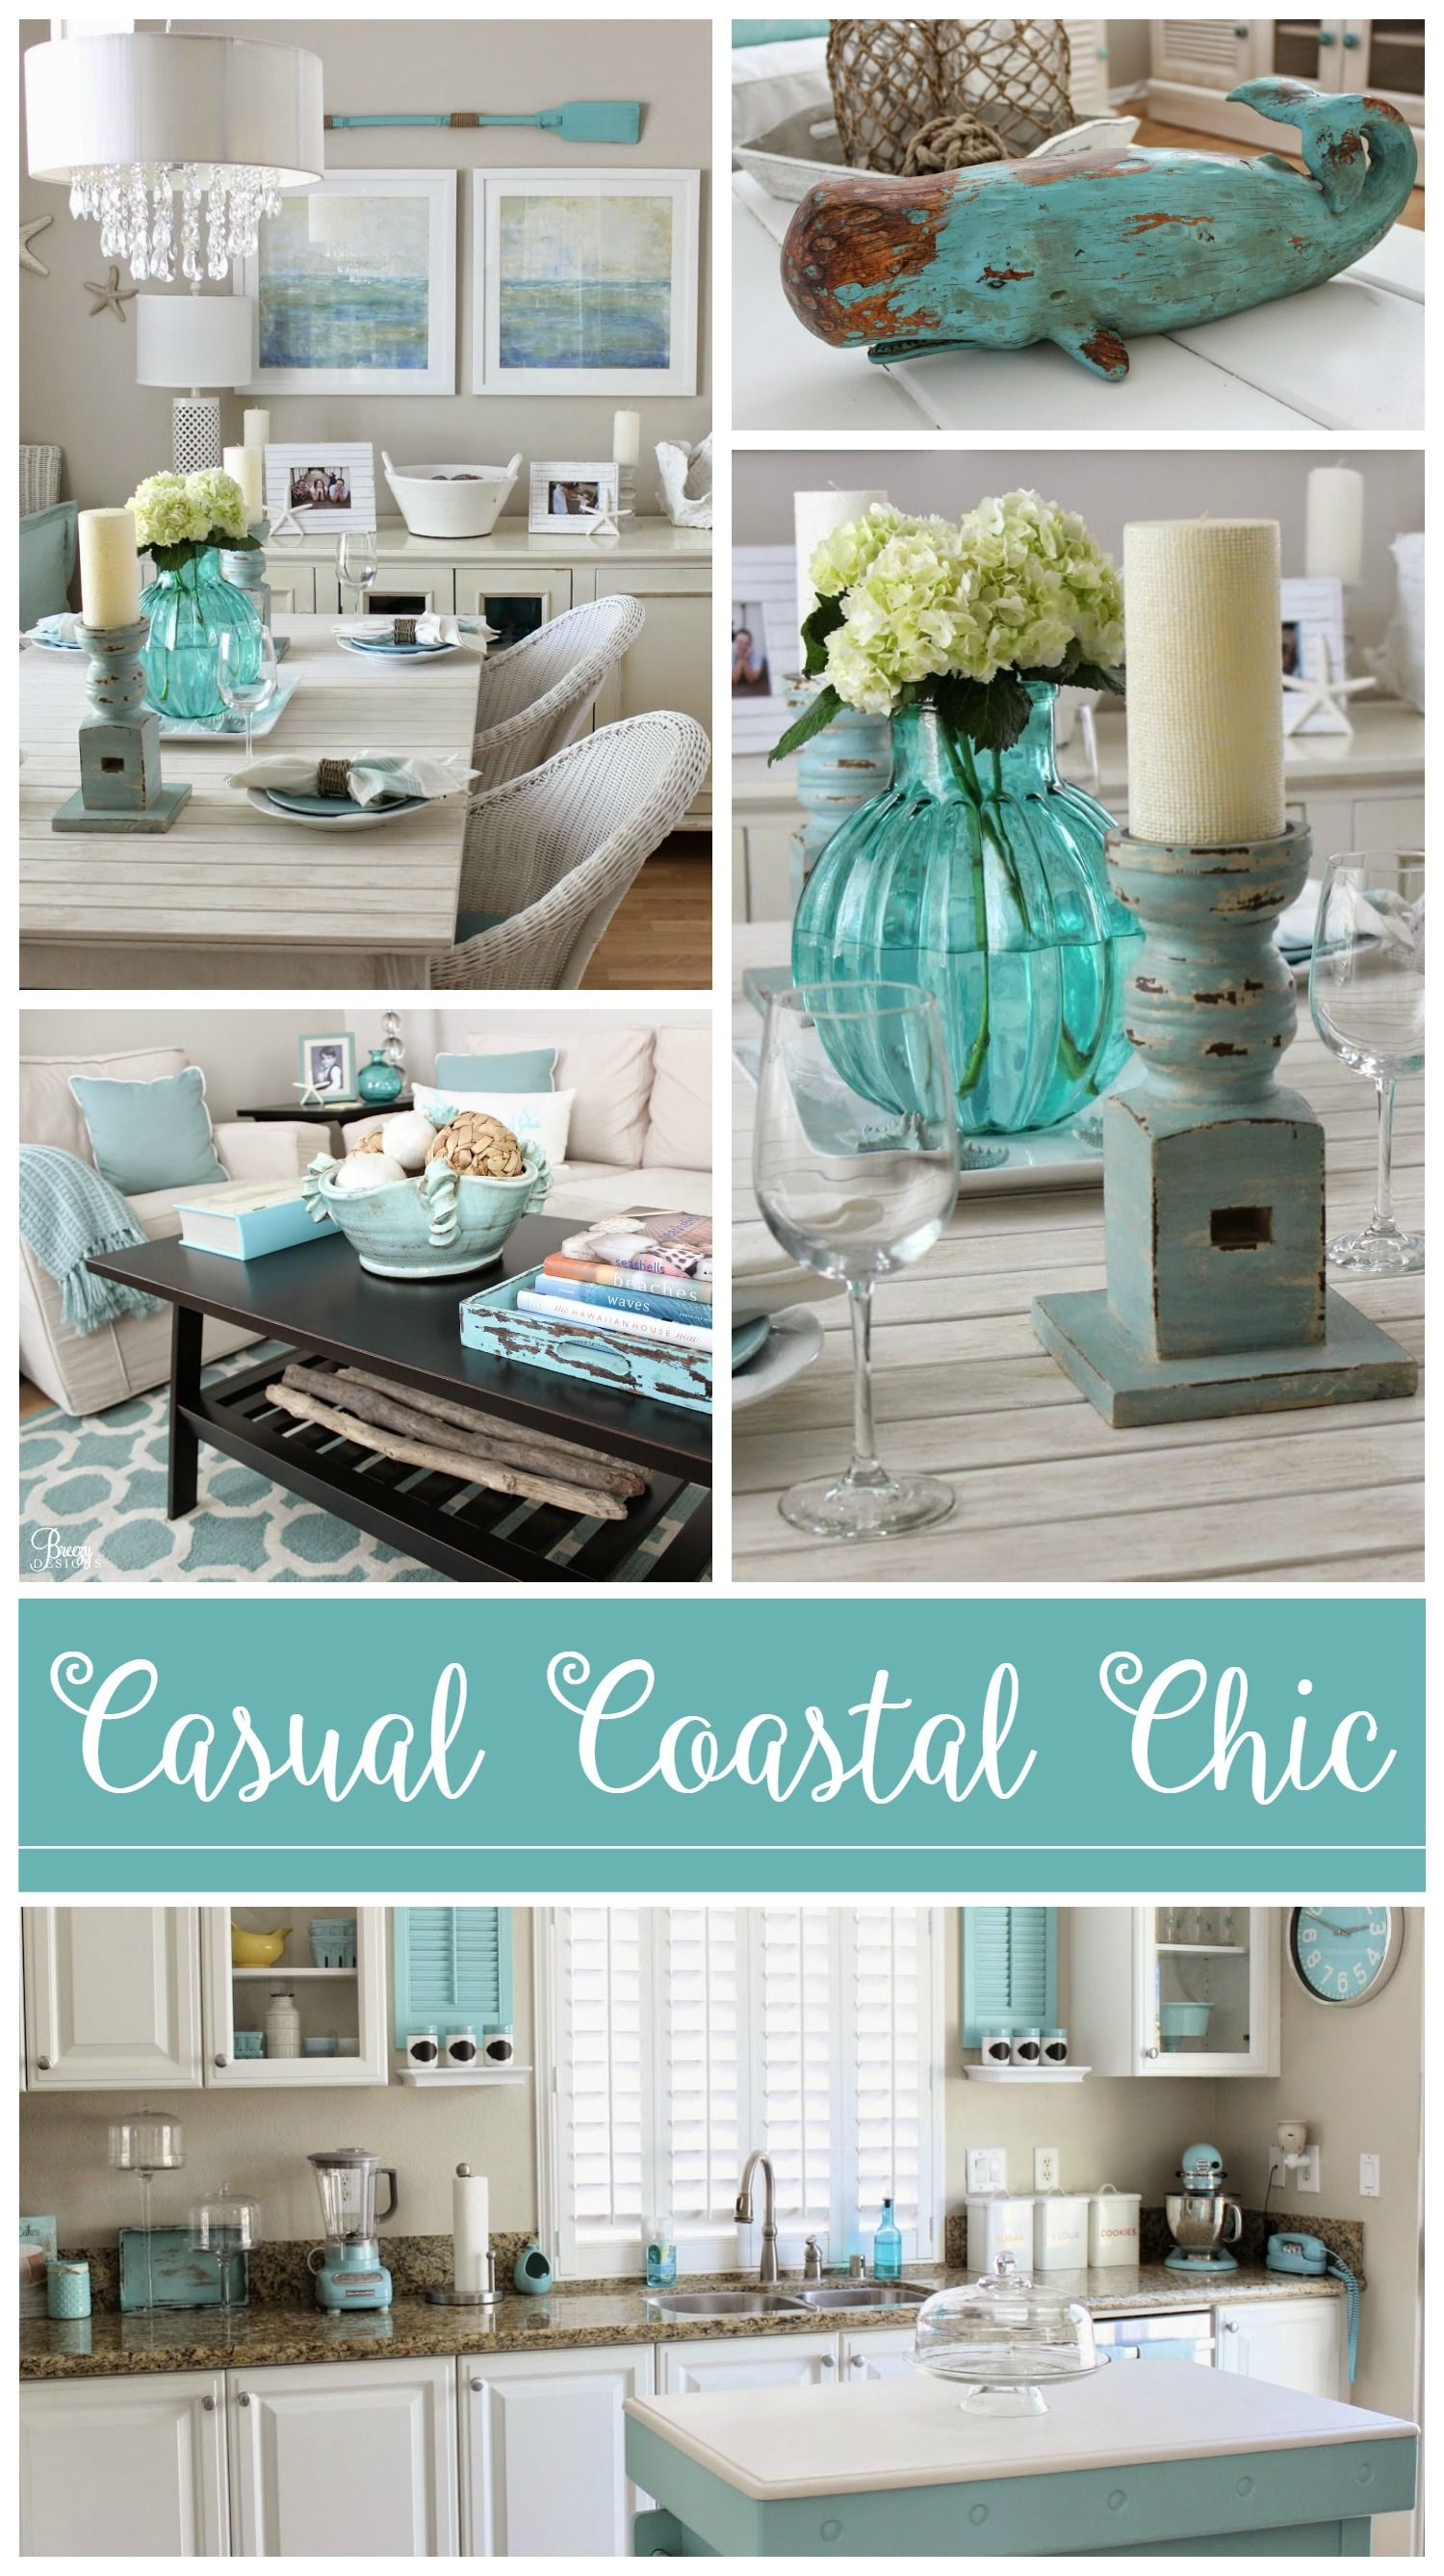 Pretty Cottage Bungalow Featuring Coastal Home Decorating In White Neutrals Aqua Turquoise